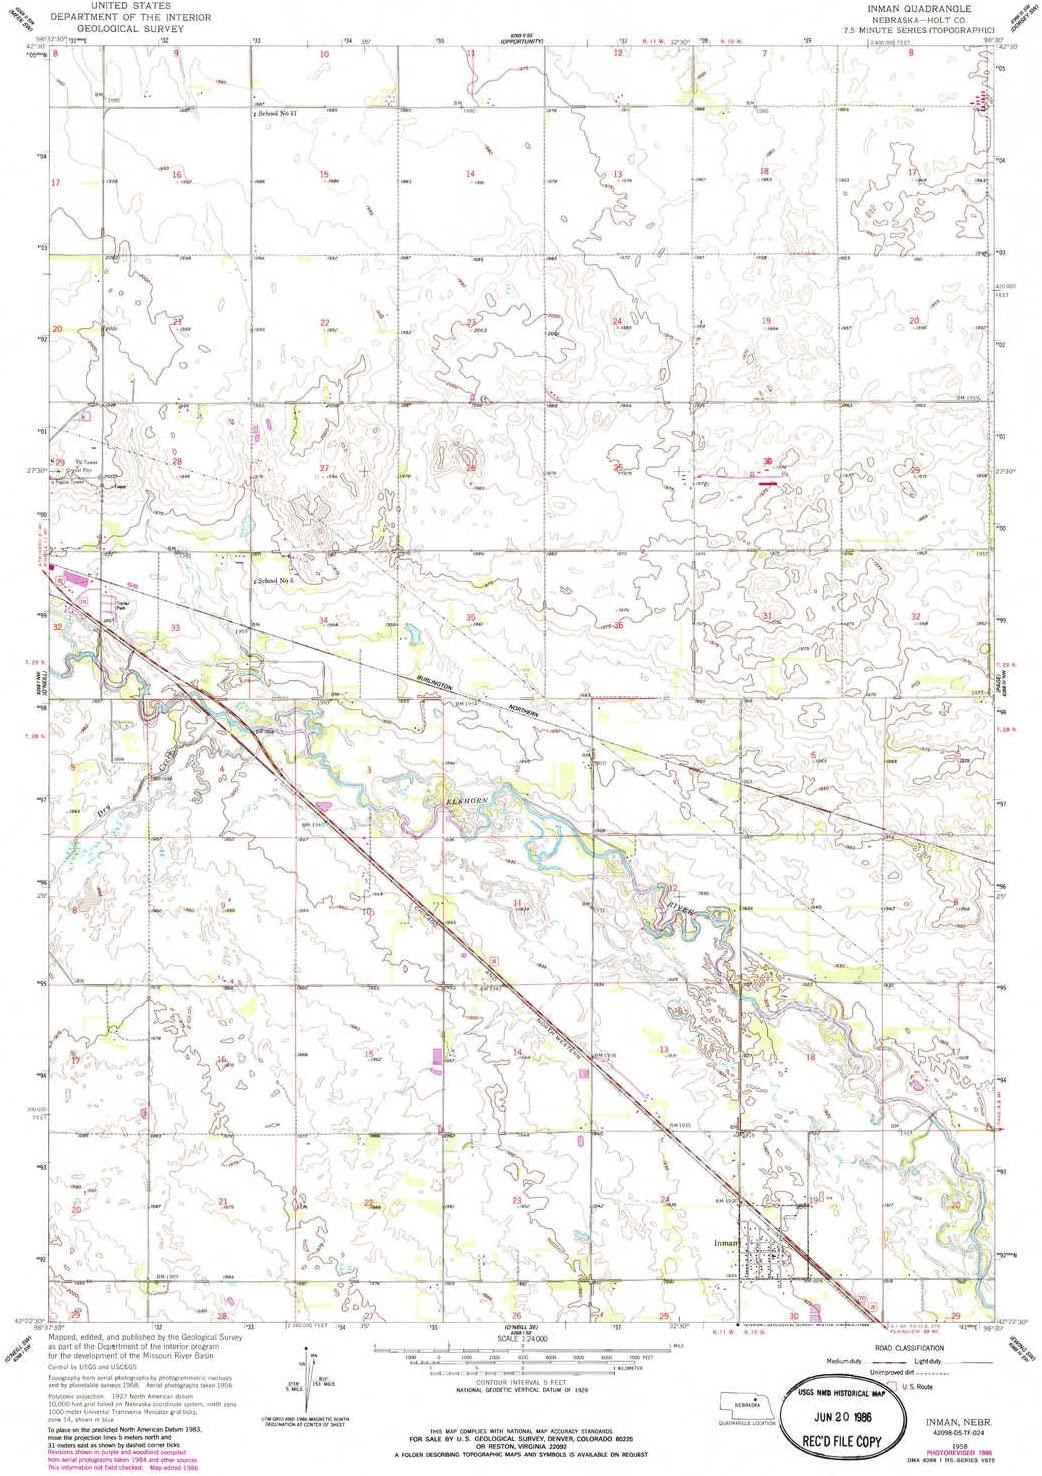 YellowMaps Inman NE topo map 1:24000 X 7.5 Outlet sale feature H Minute Scale sale